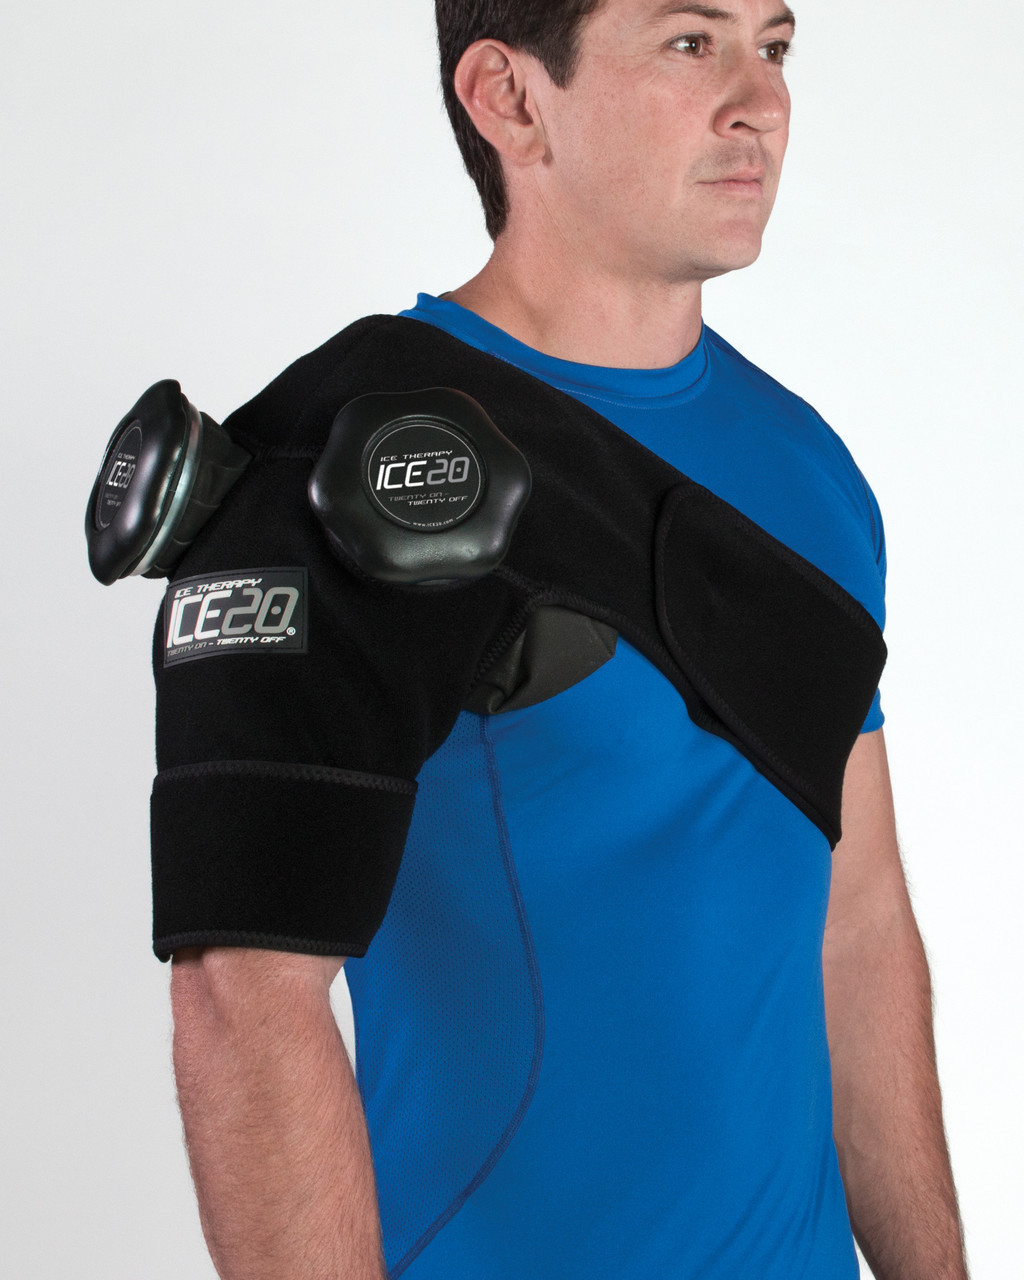 Ice20 Double Shoulder Compression Wrap